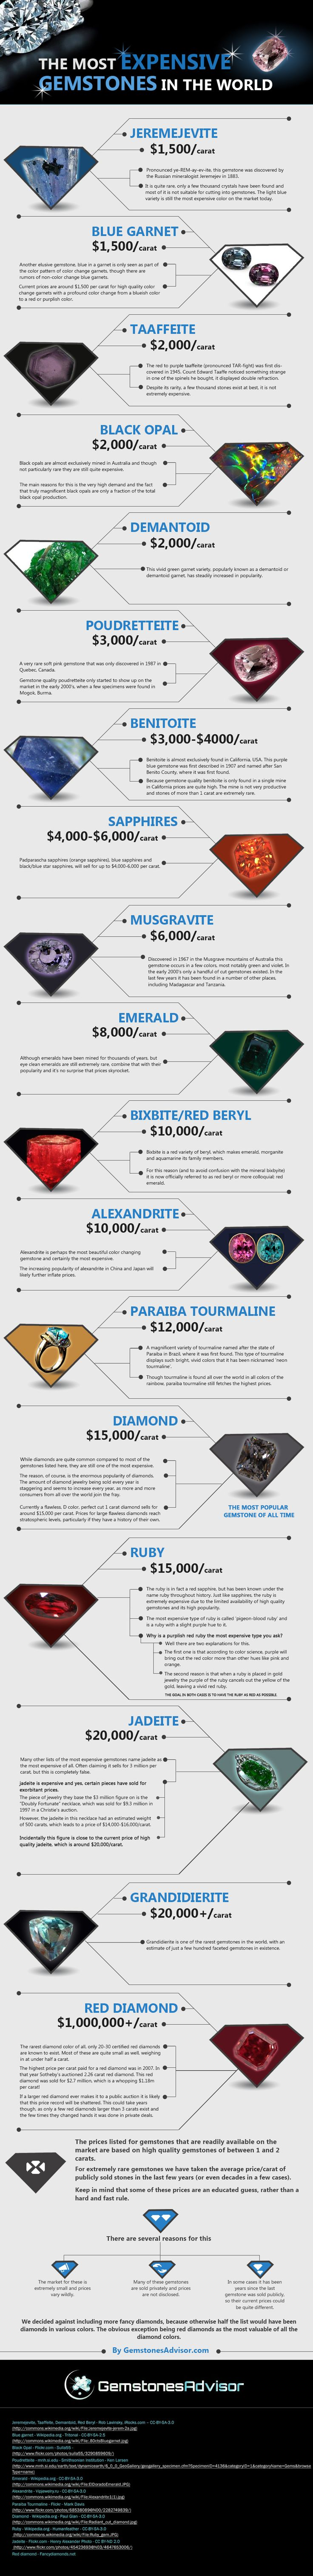 The Most Expensive Gemstones in the World – With Infographic!